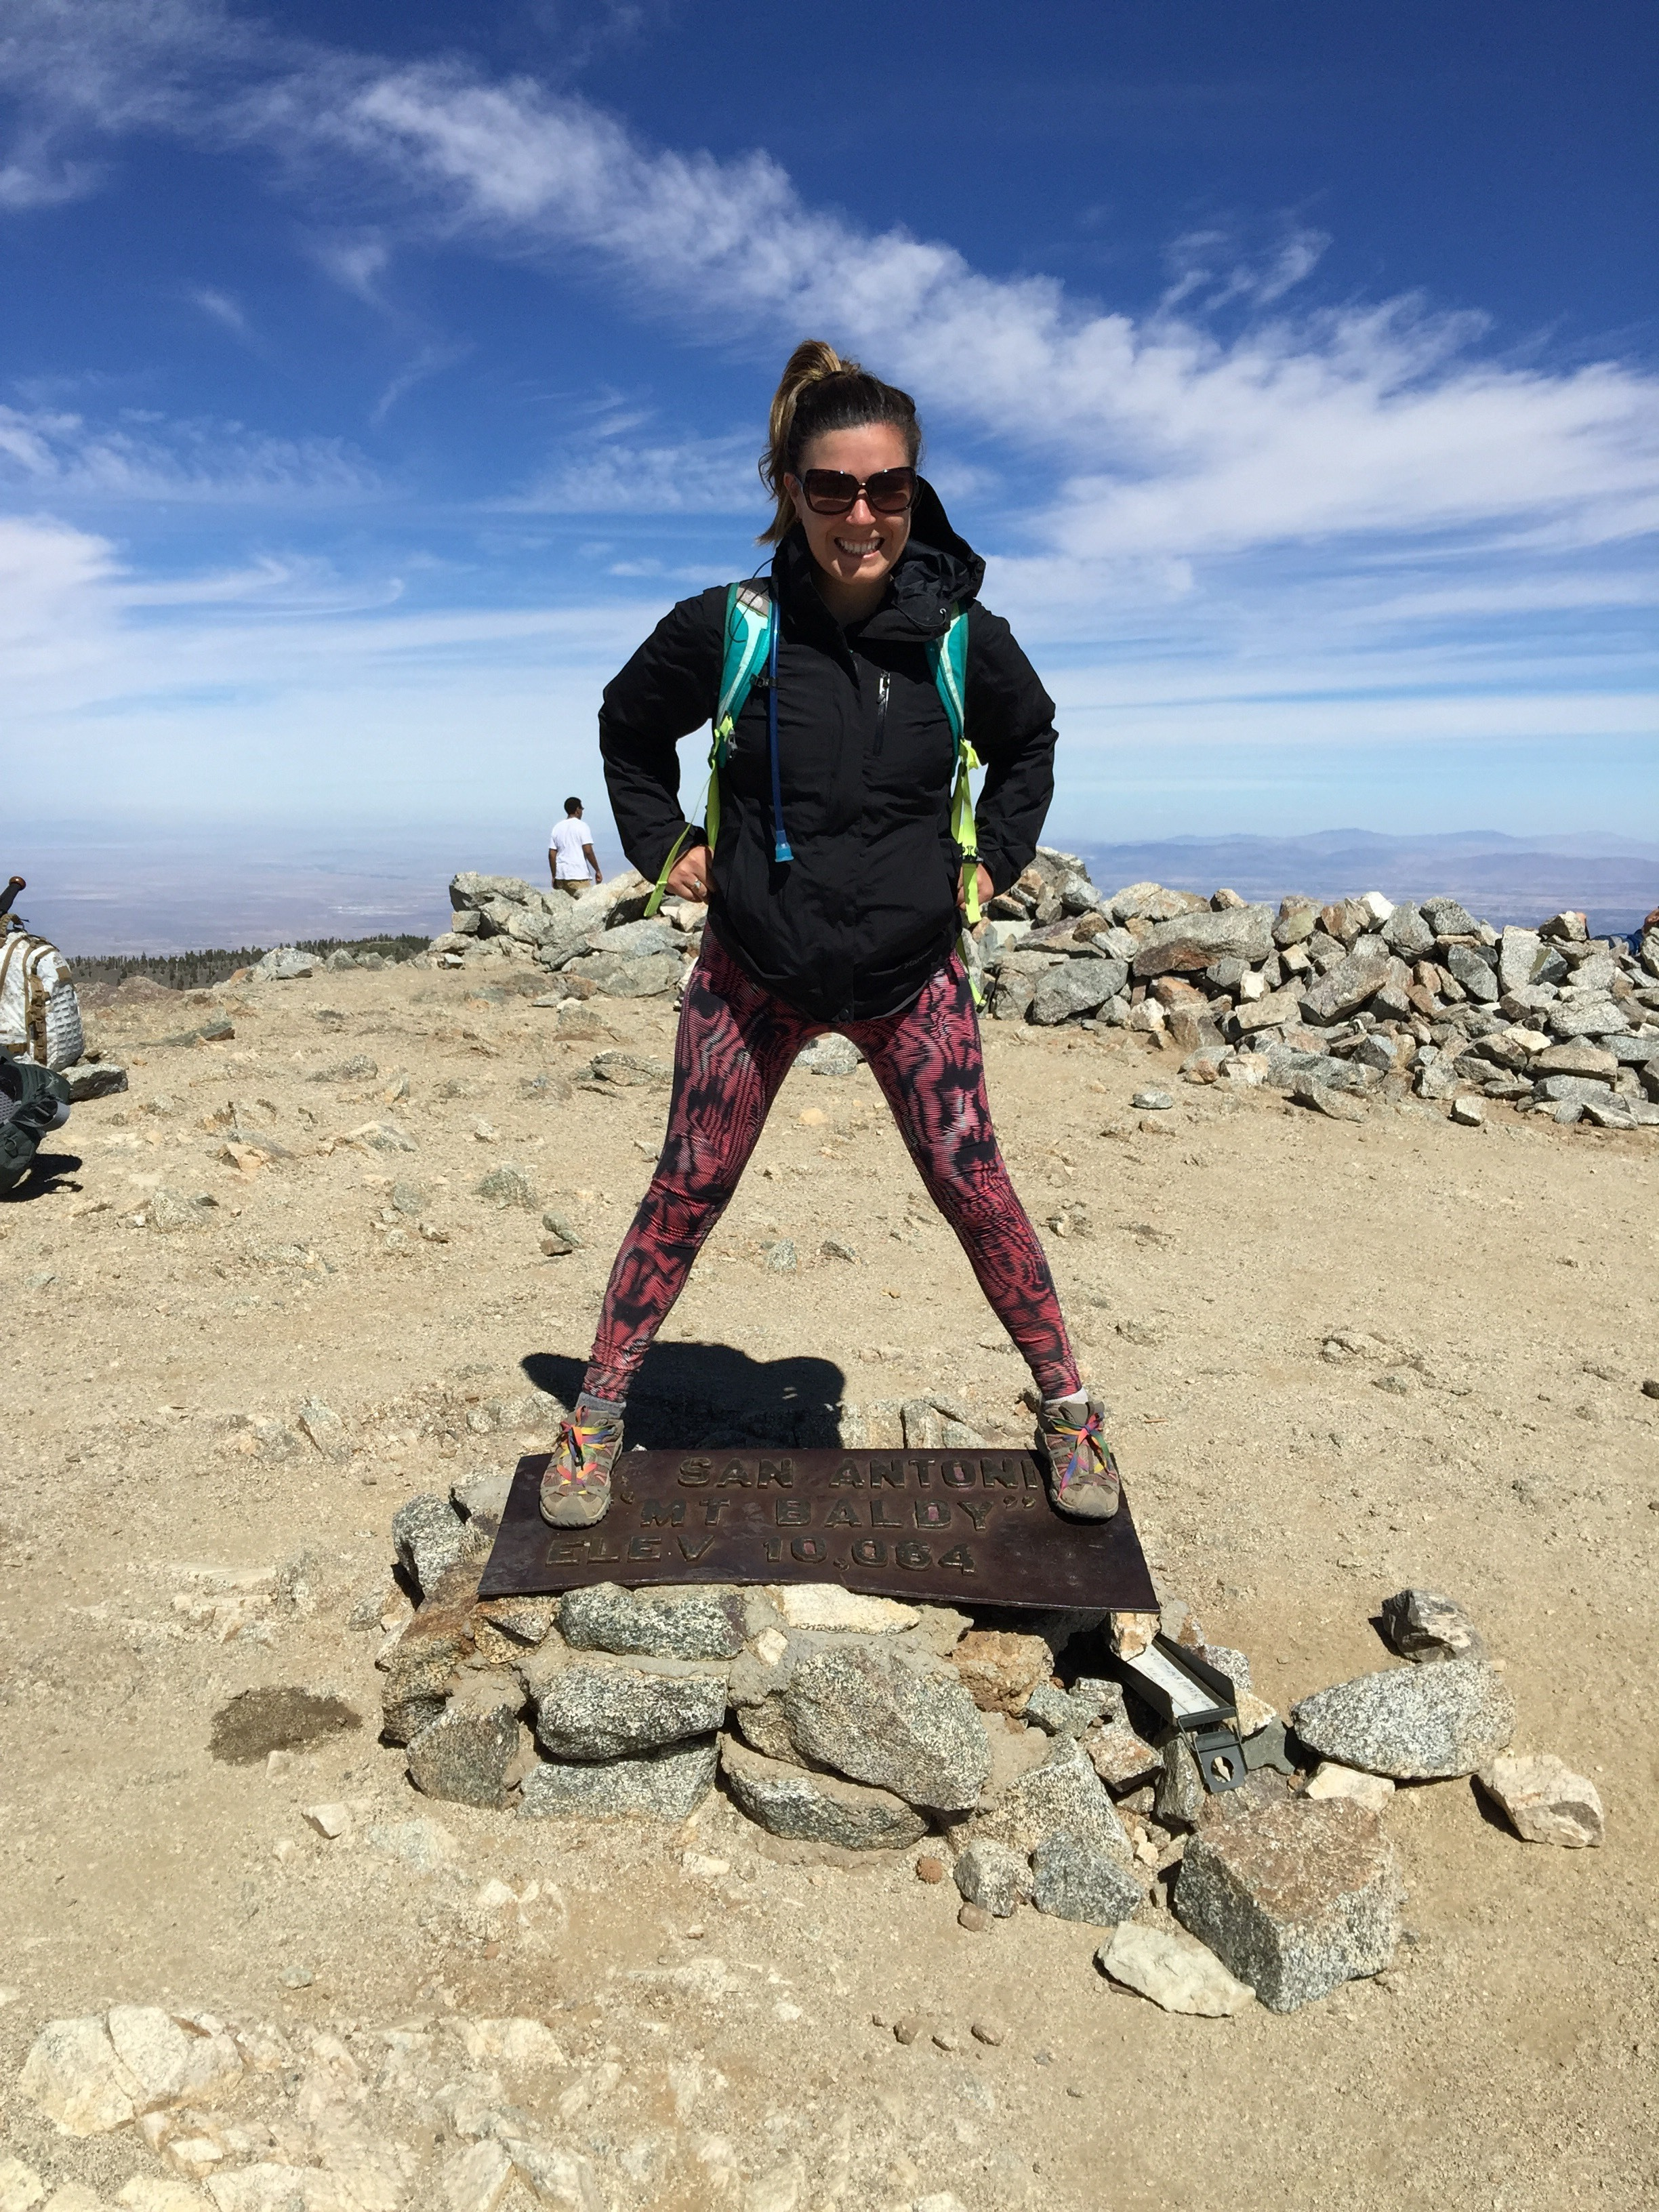 Spring 2016 Mt. Baldy. 85 degrees at the trail head with 30mph winds at the summit. This is why you always need an extra layer in your pack. Jacket: Marmot rain shell. Pants: Nike